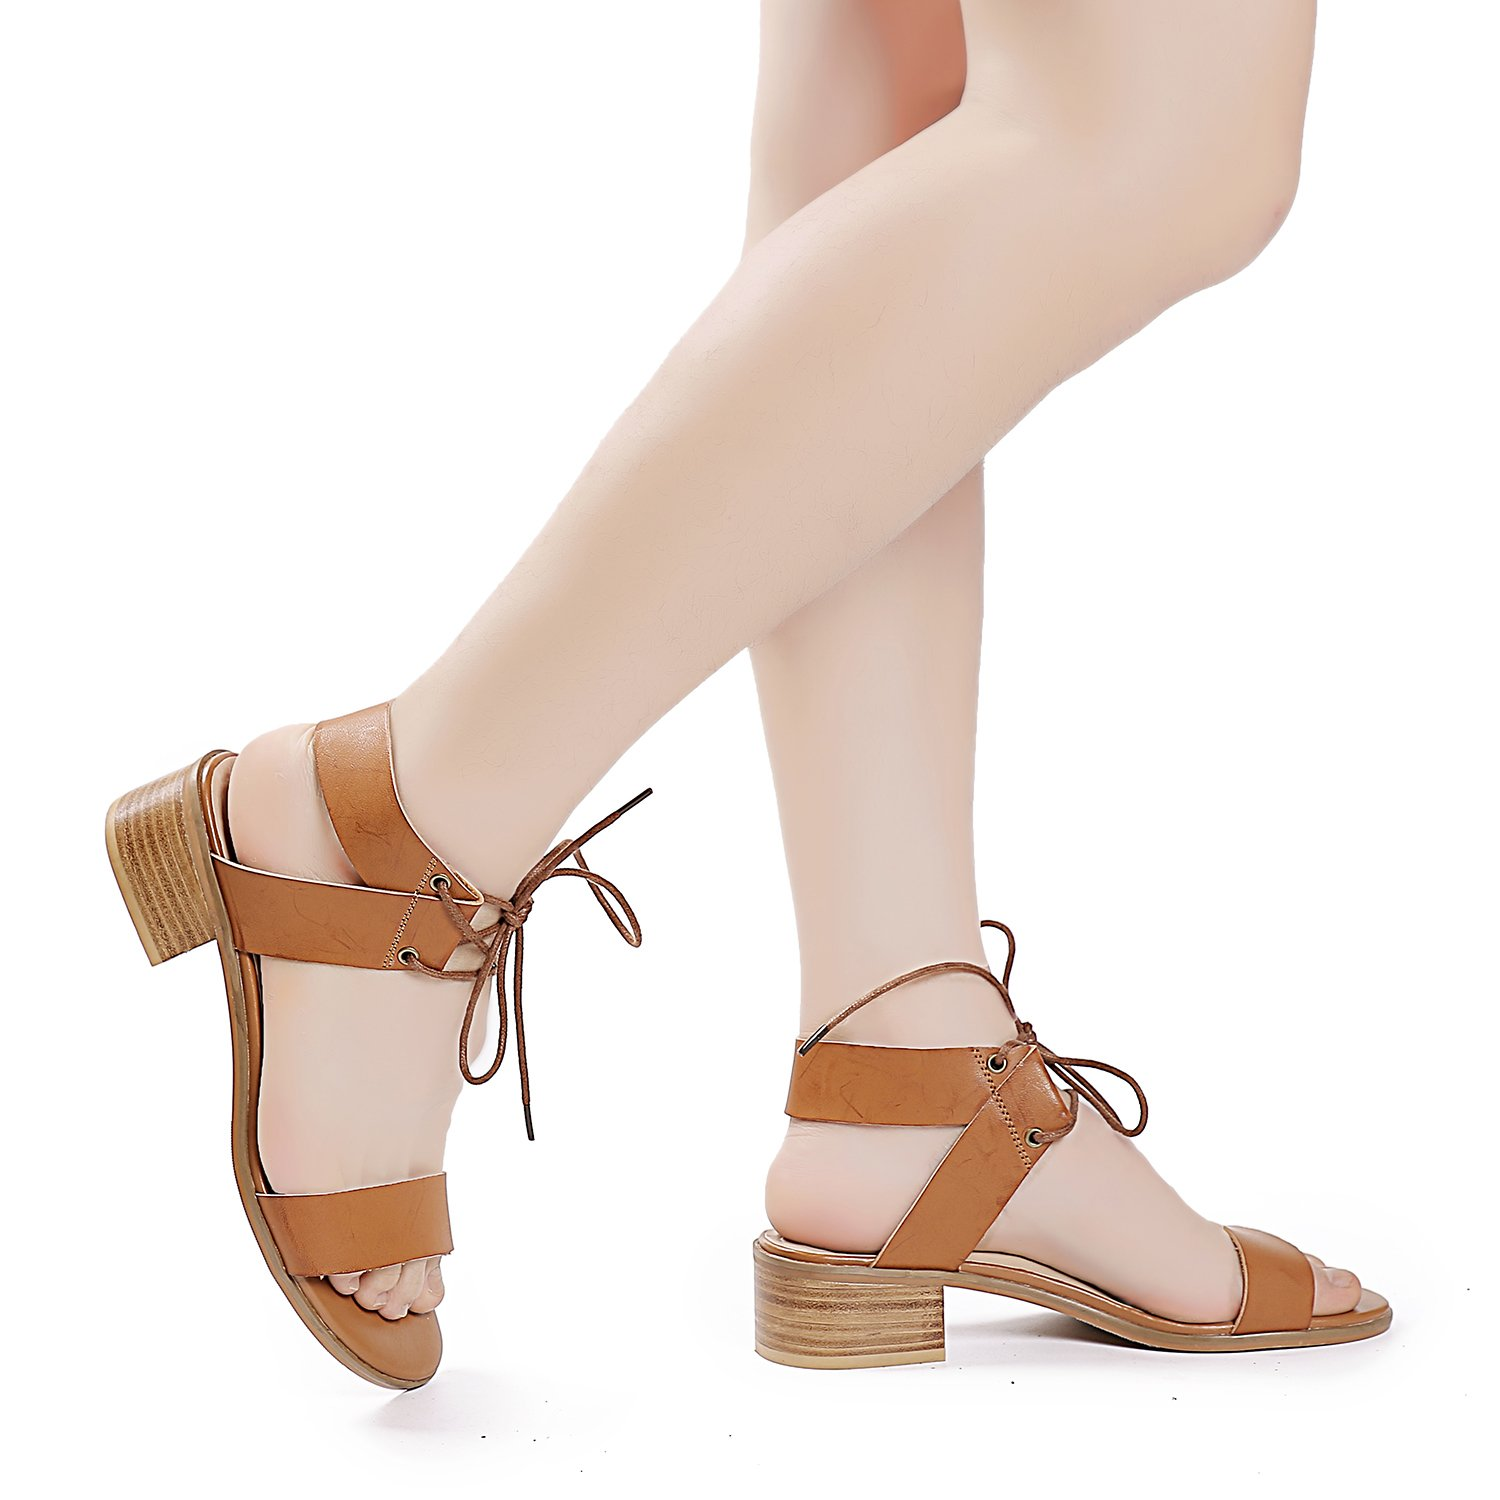 Luoika Women's Wide Width Heeled Sandals - Comfortable Open Toe Ankle Strap Flexible Pump Summer Shoes(180331,Brown,8.5WW